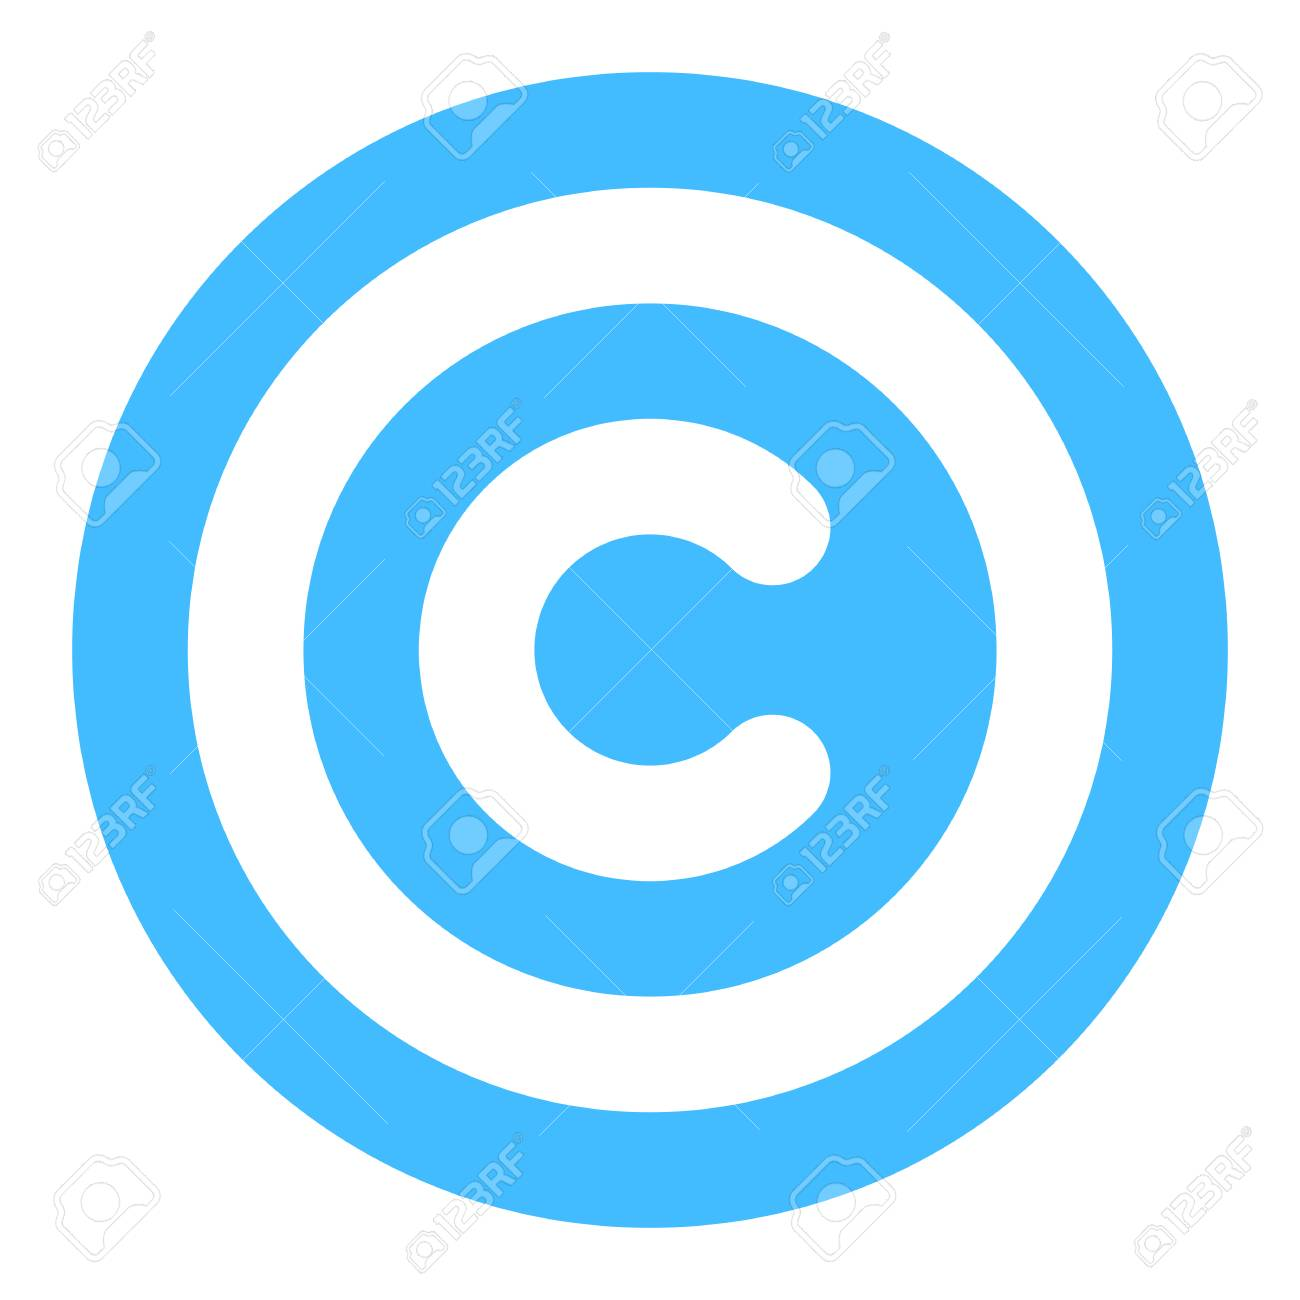 Use It In All Your Designs The Copyright Symbol Or Copyright